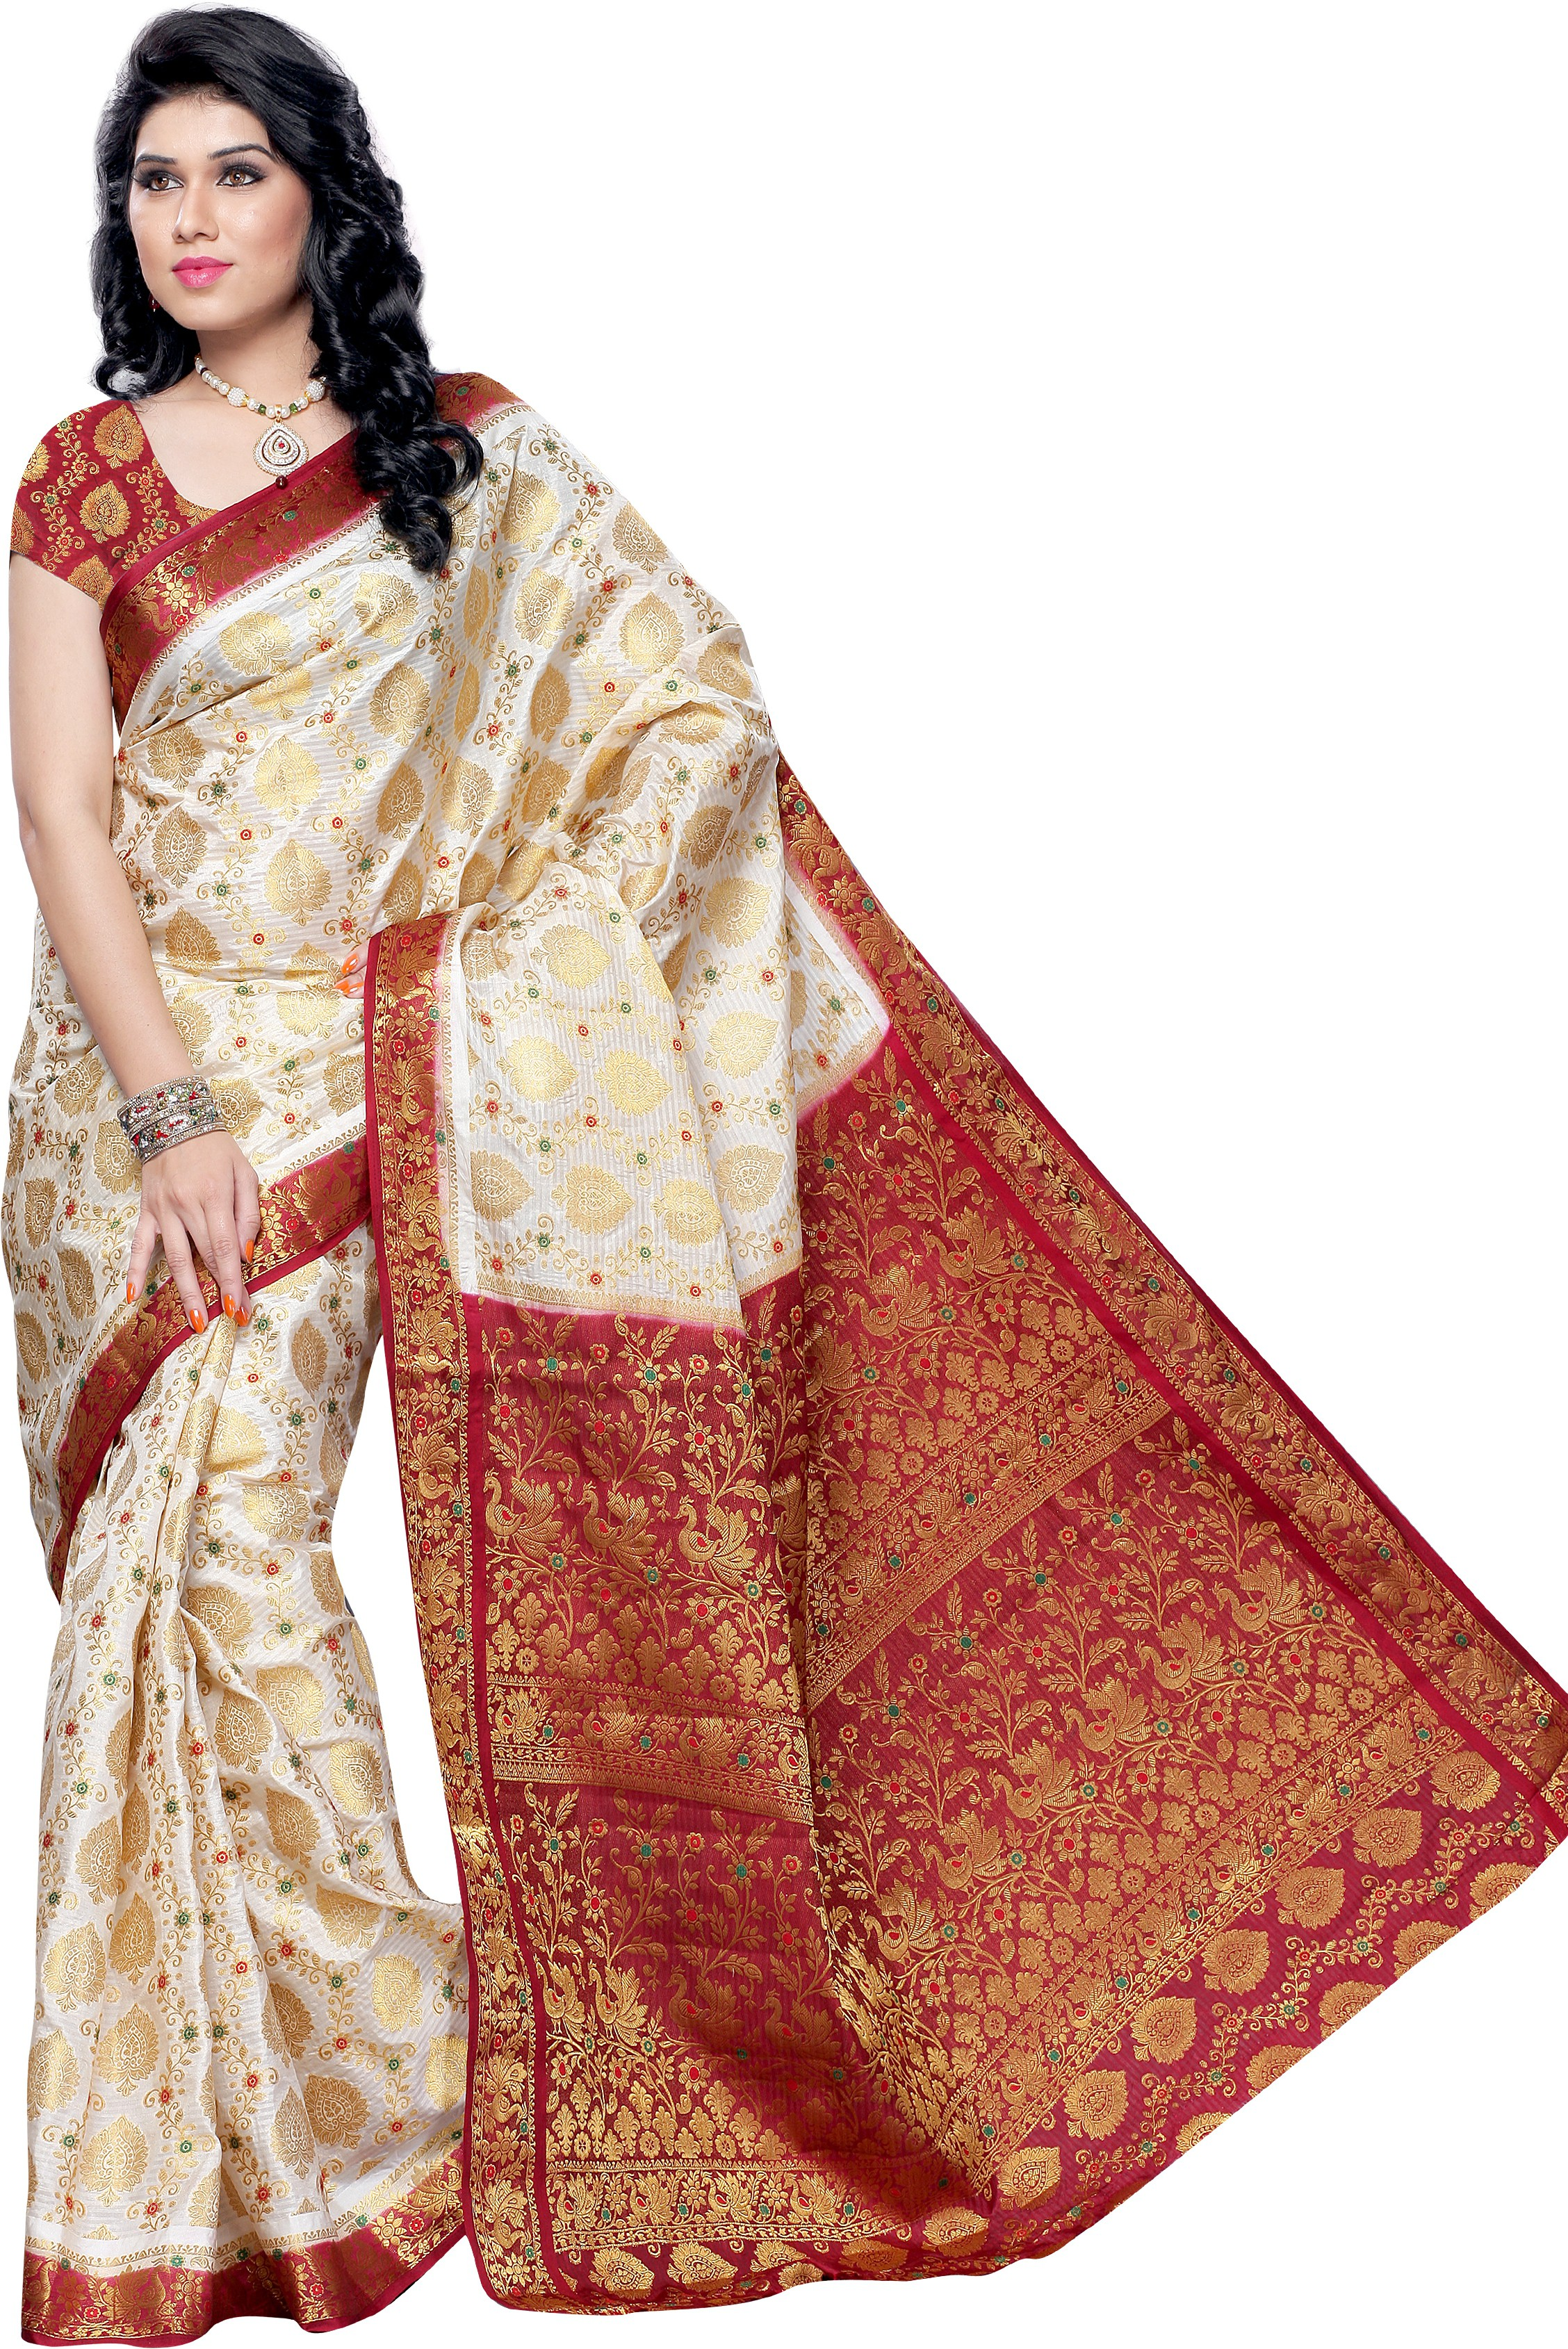 Flipkart - Kanjivaram Sarees Minimum 60% Off